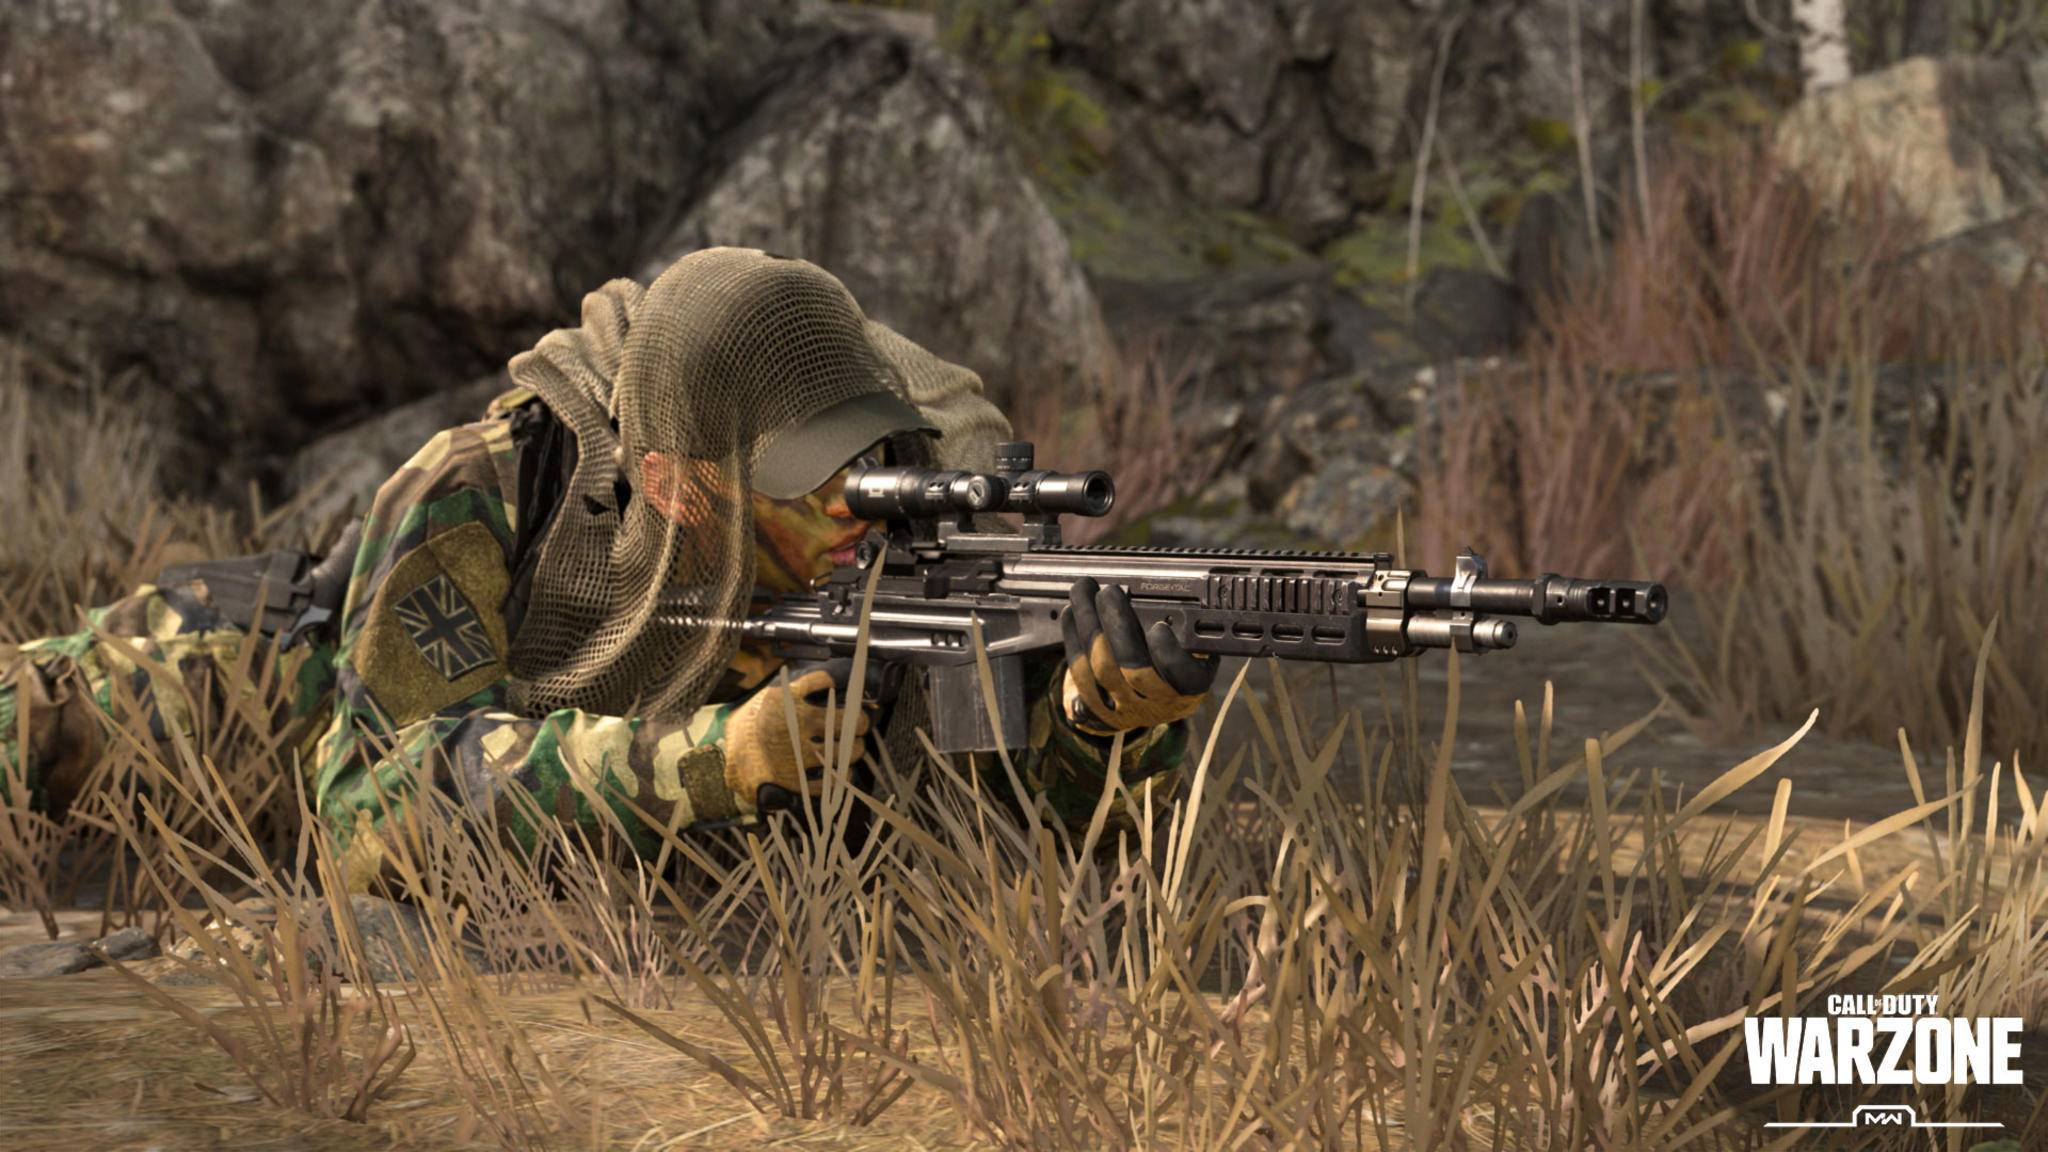 call-of-duty-warzone-sniper